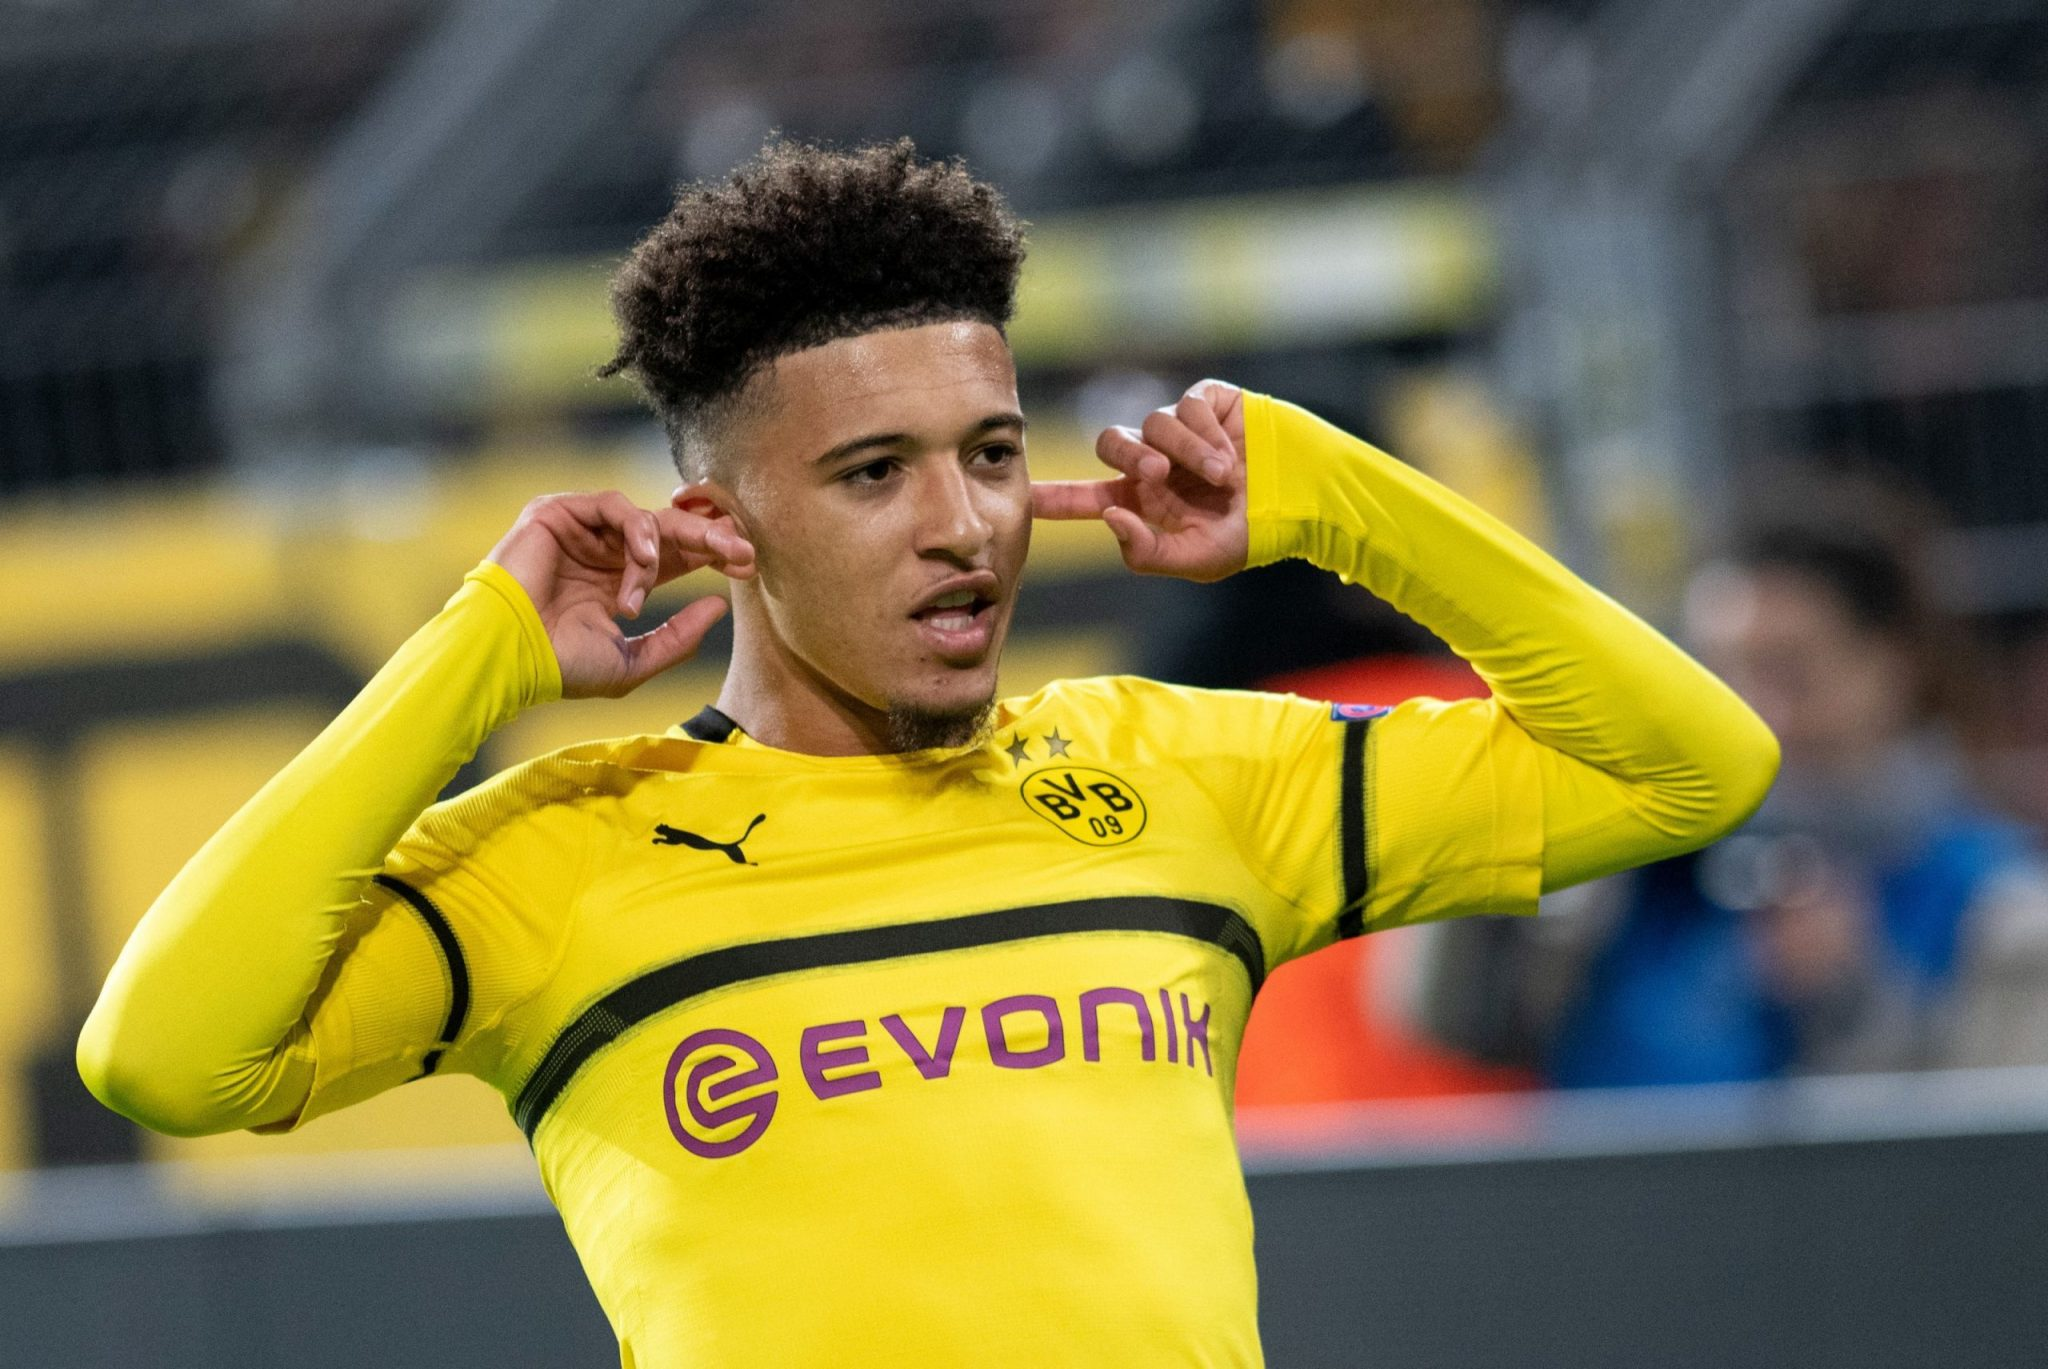 jadon sancho-jadon sancho after celebrating the goal in yellow home jersey of borussia dortmund